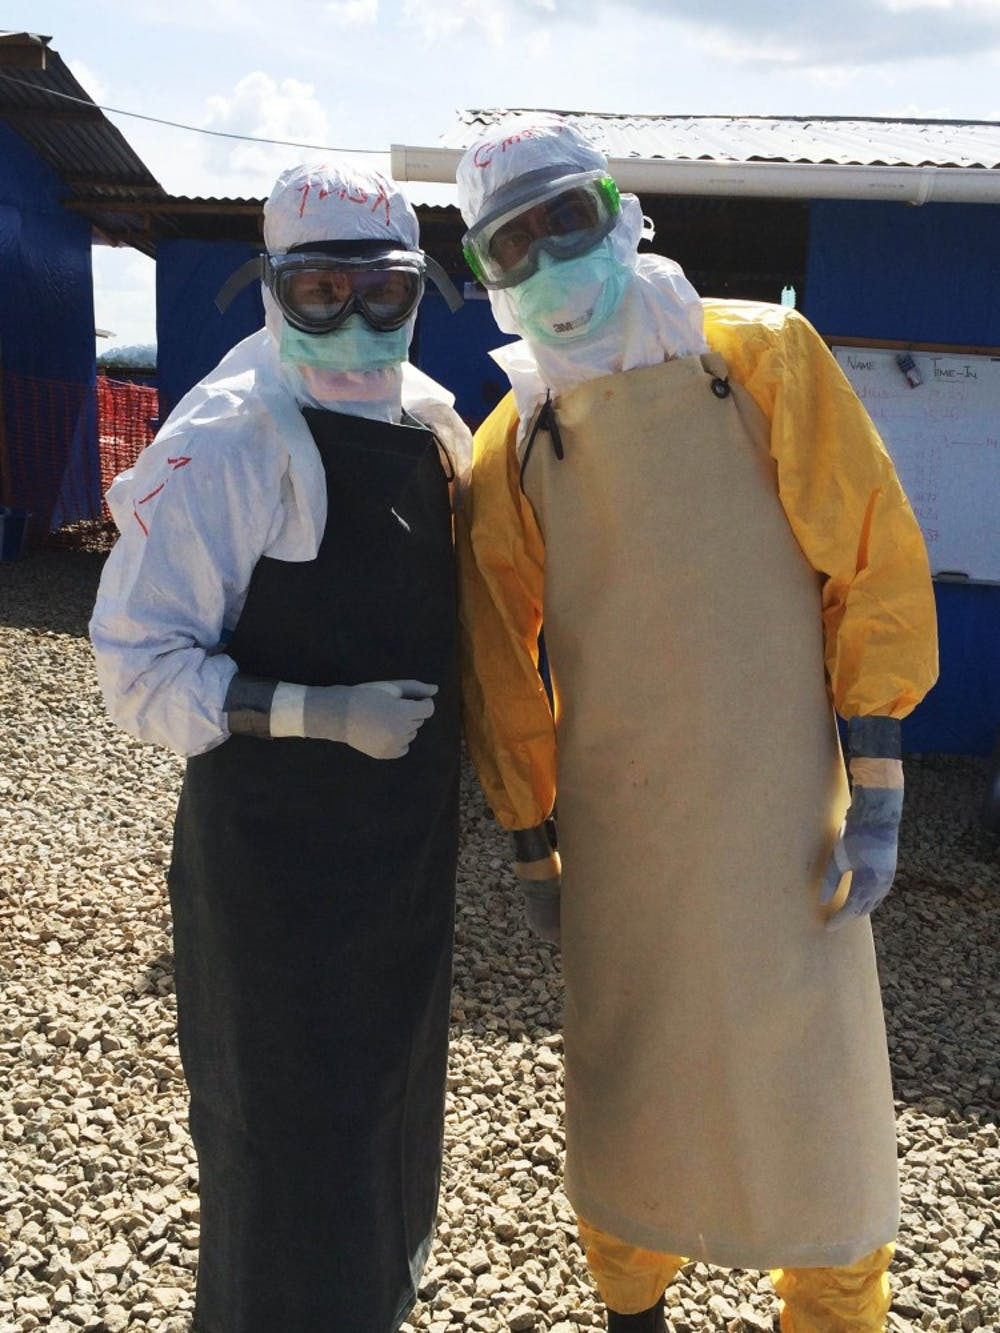 On the left is Doctor Trish Henwood, the newly appointed Director of Global Health Initiatives in Emergency Medicine at HUP.